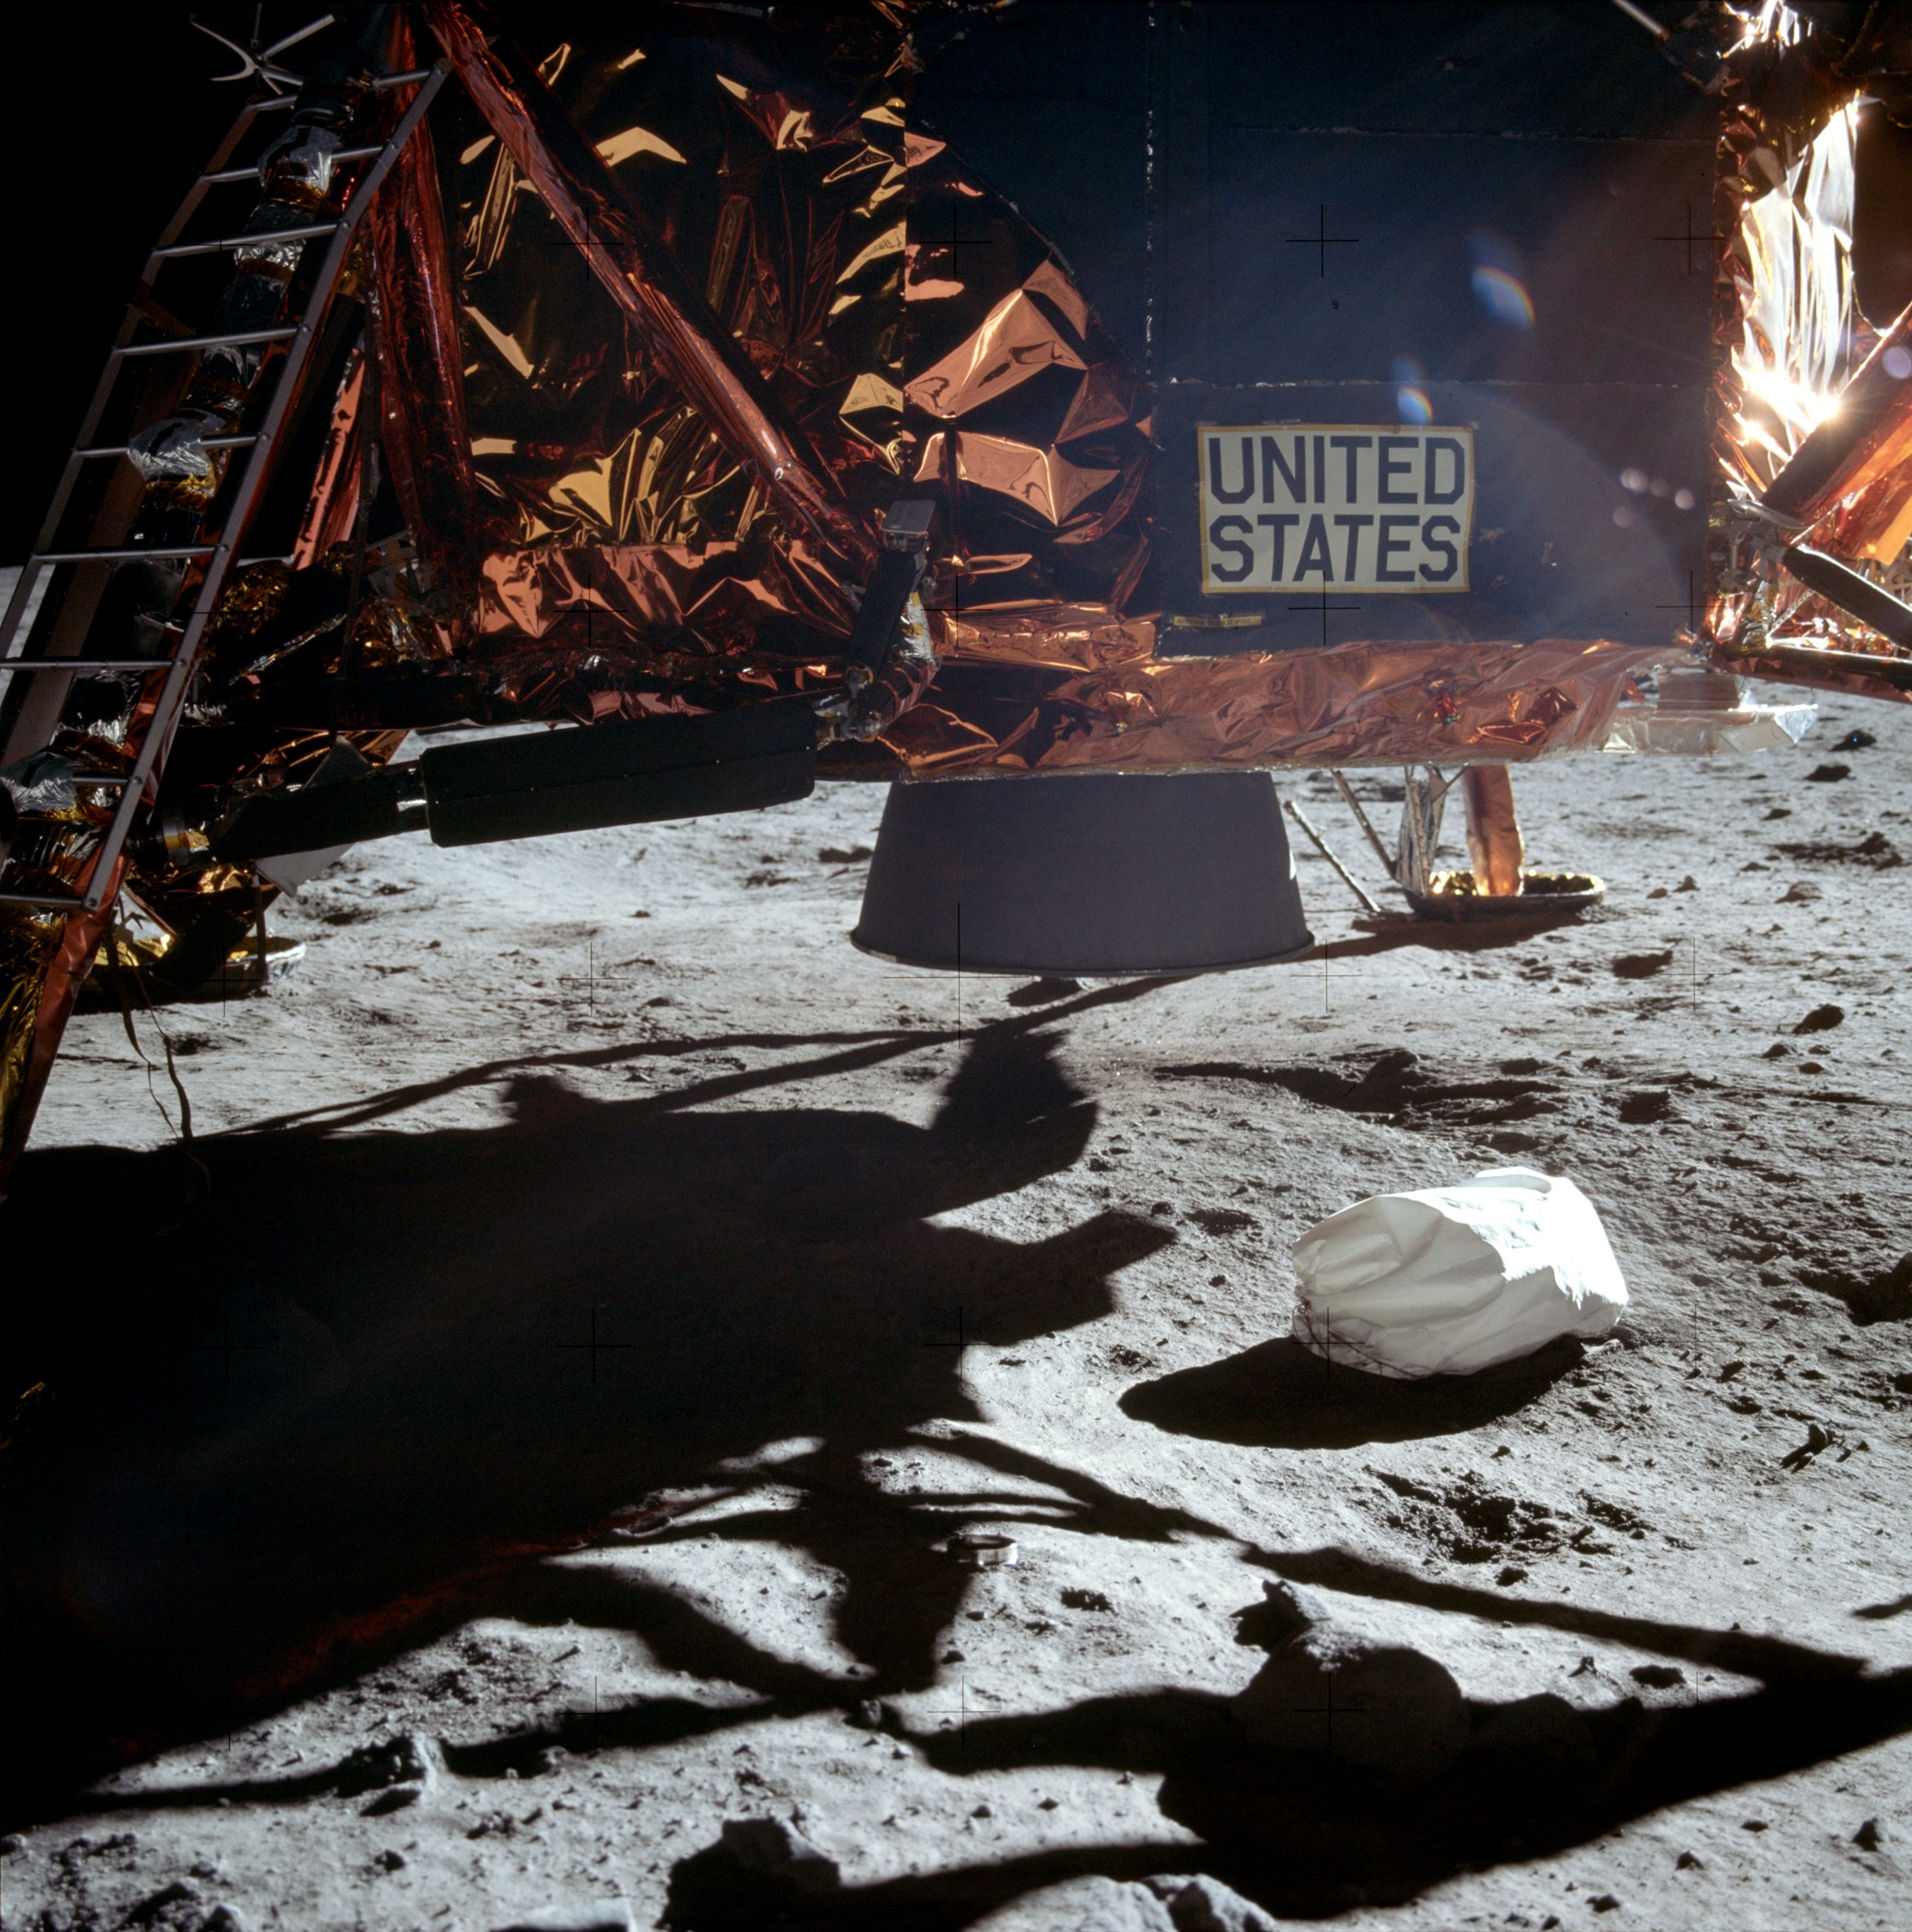 File:Apollo11 under LM.jpg - Wikimedia Commons